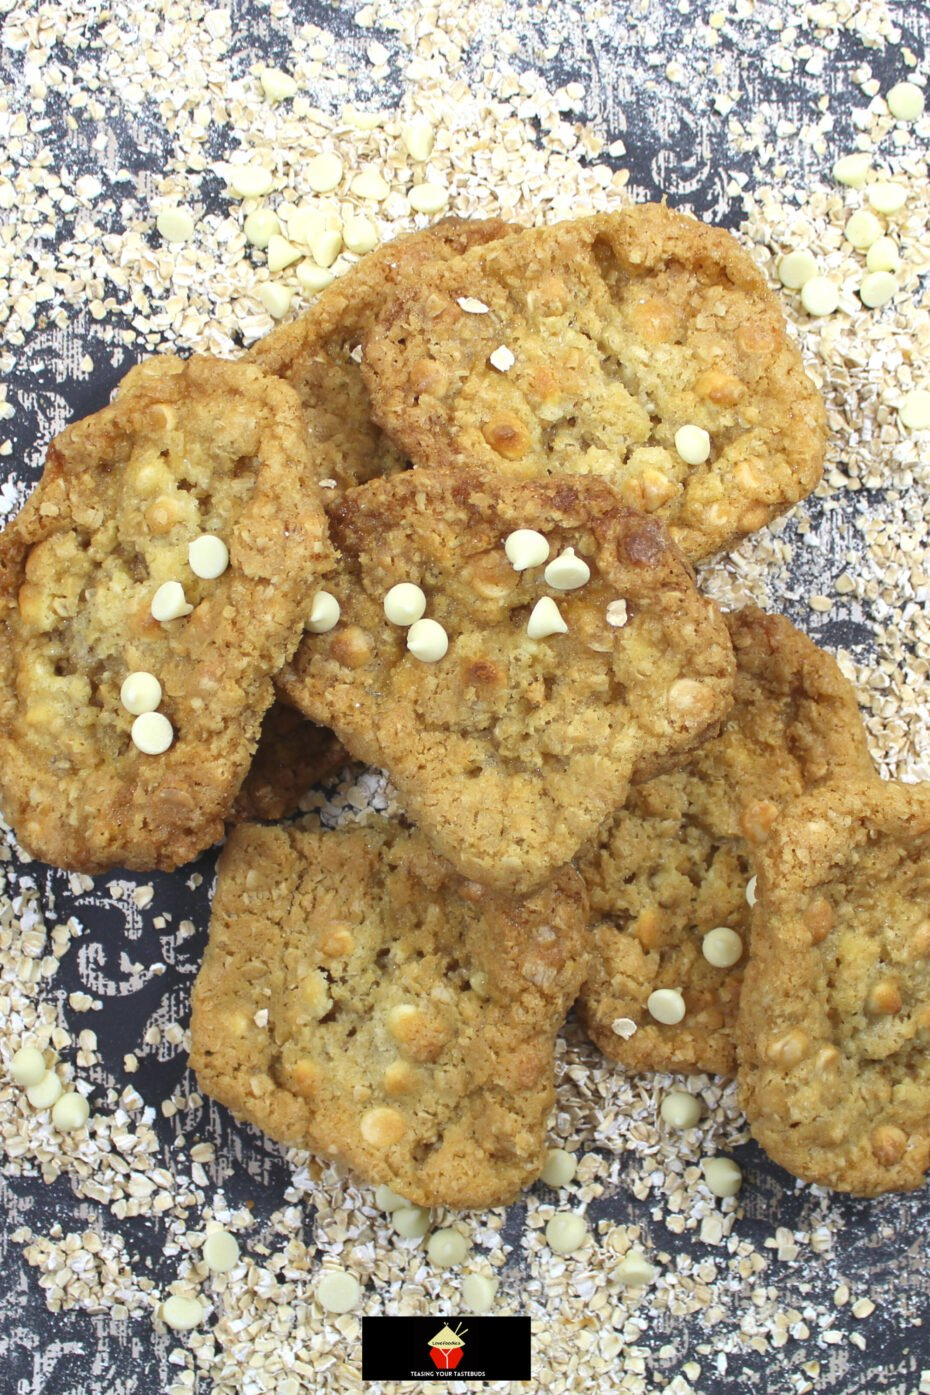 Chewy White Chocolate Oatmeal Cookies. Soft and Chewy on the inside and crispy on the outside, these are the BEST EVER oatmeal cookies, loaded with white chocolate. A simple classic cookie recipe